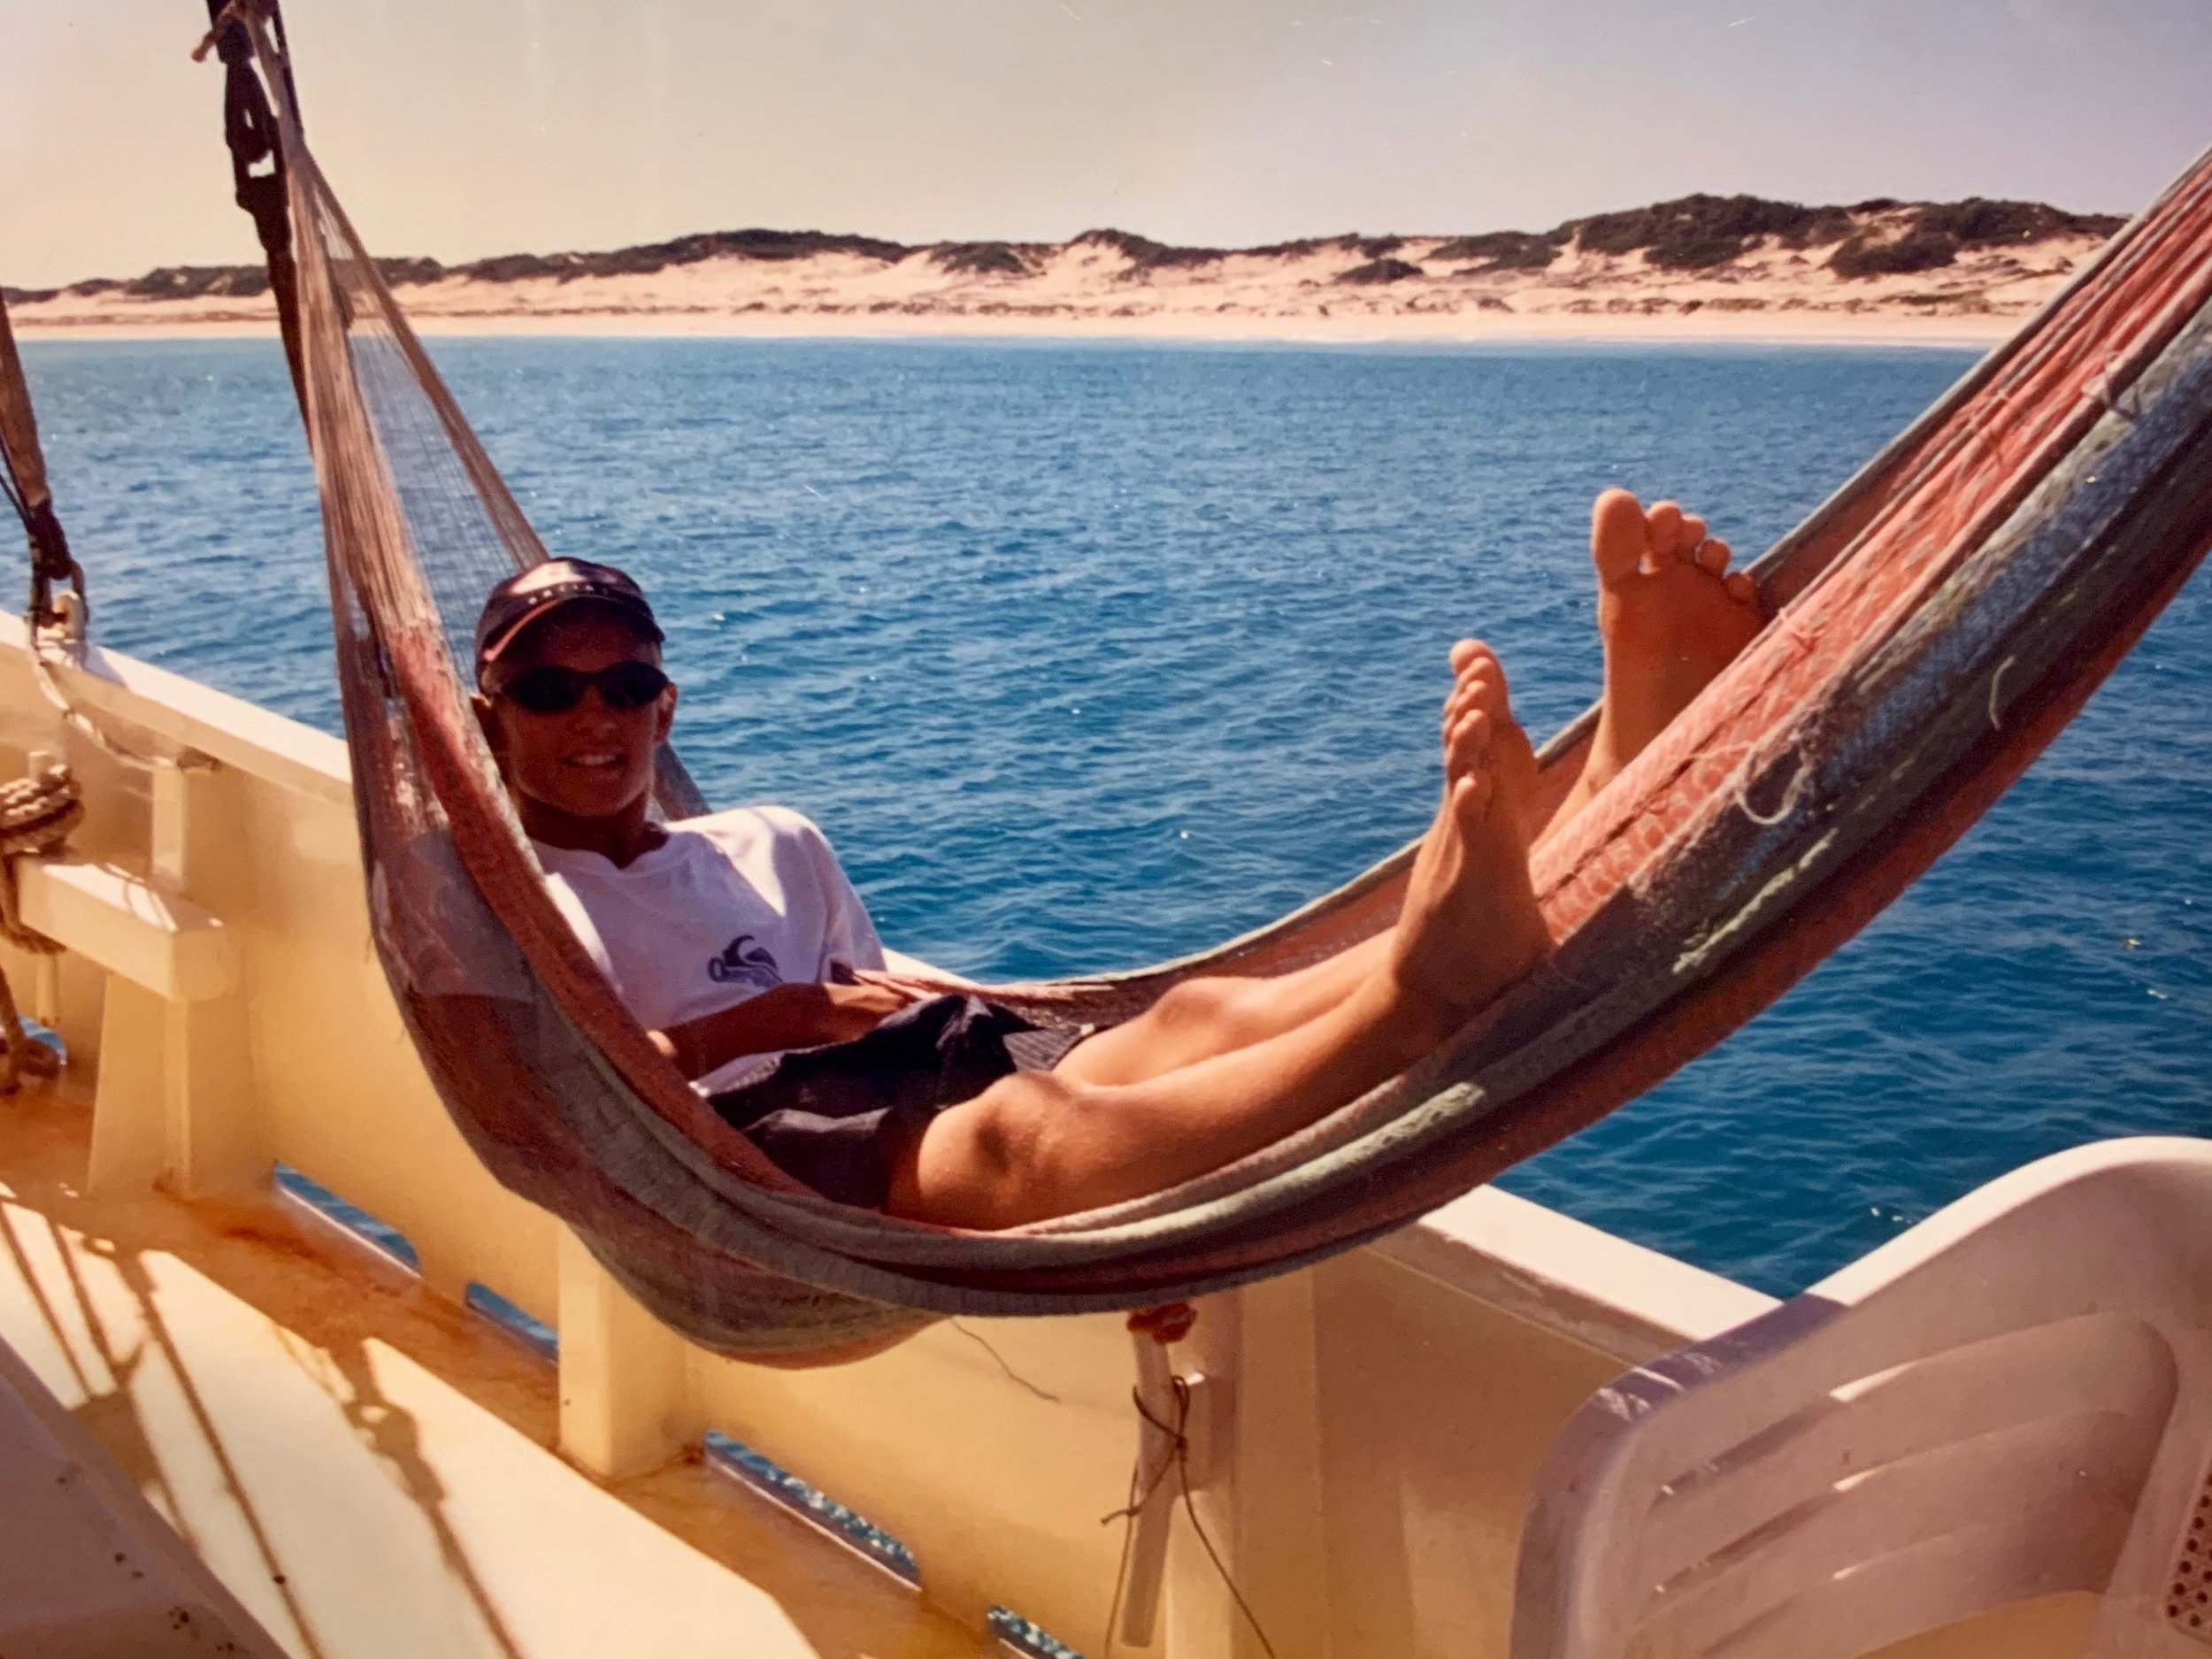 Working hard, or hardly working? Aboard Broome's old pearl lugger 'The Willie'.